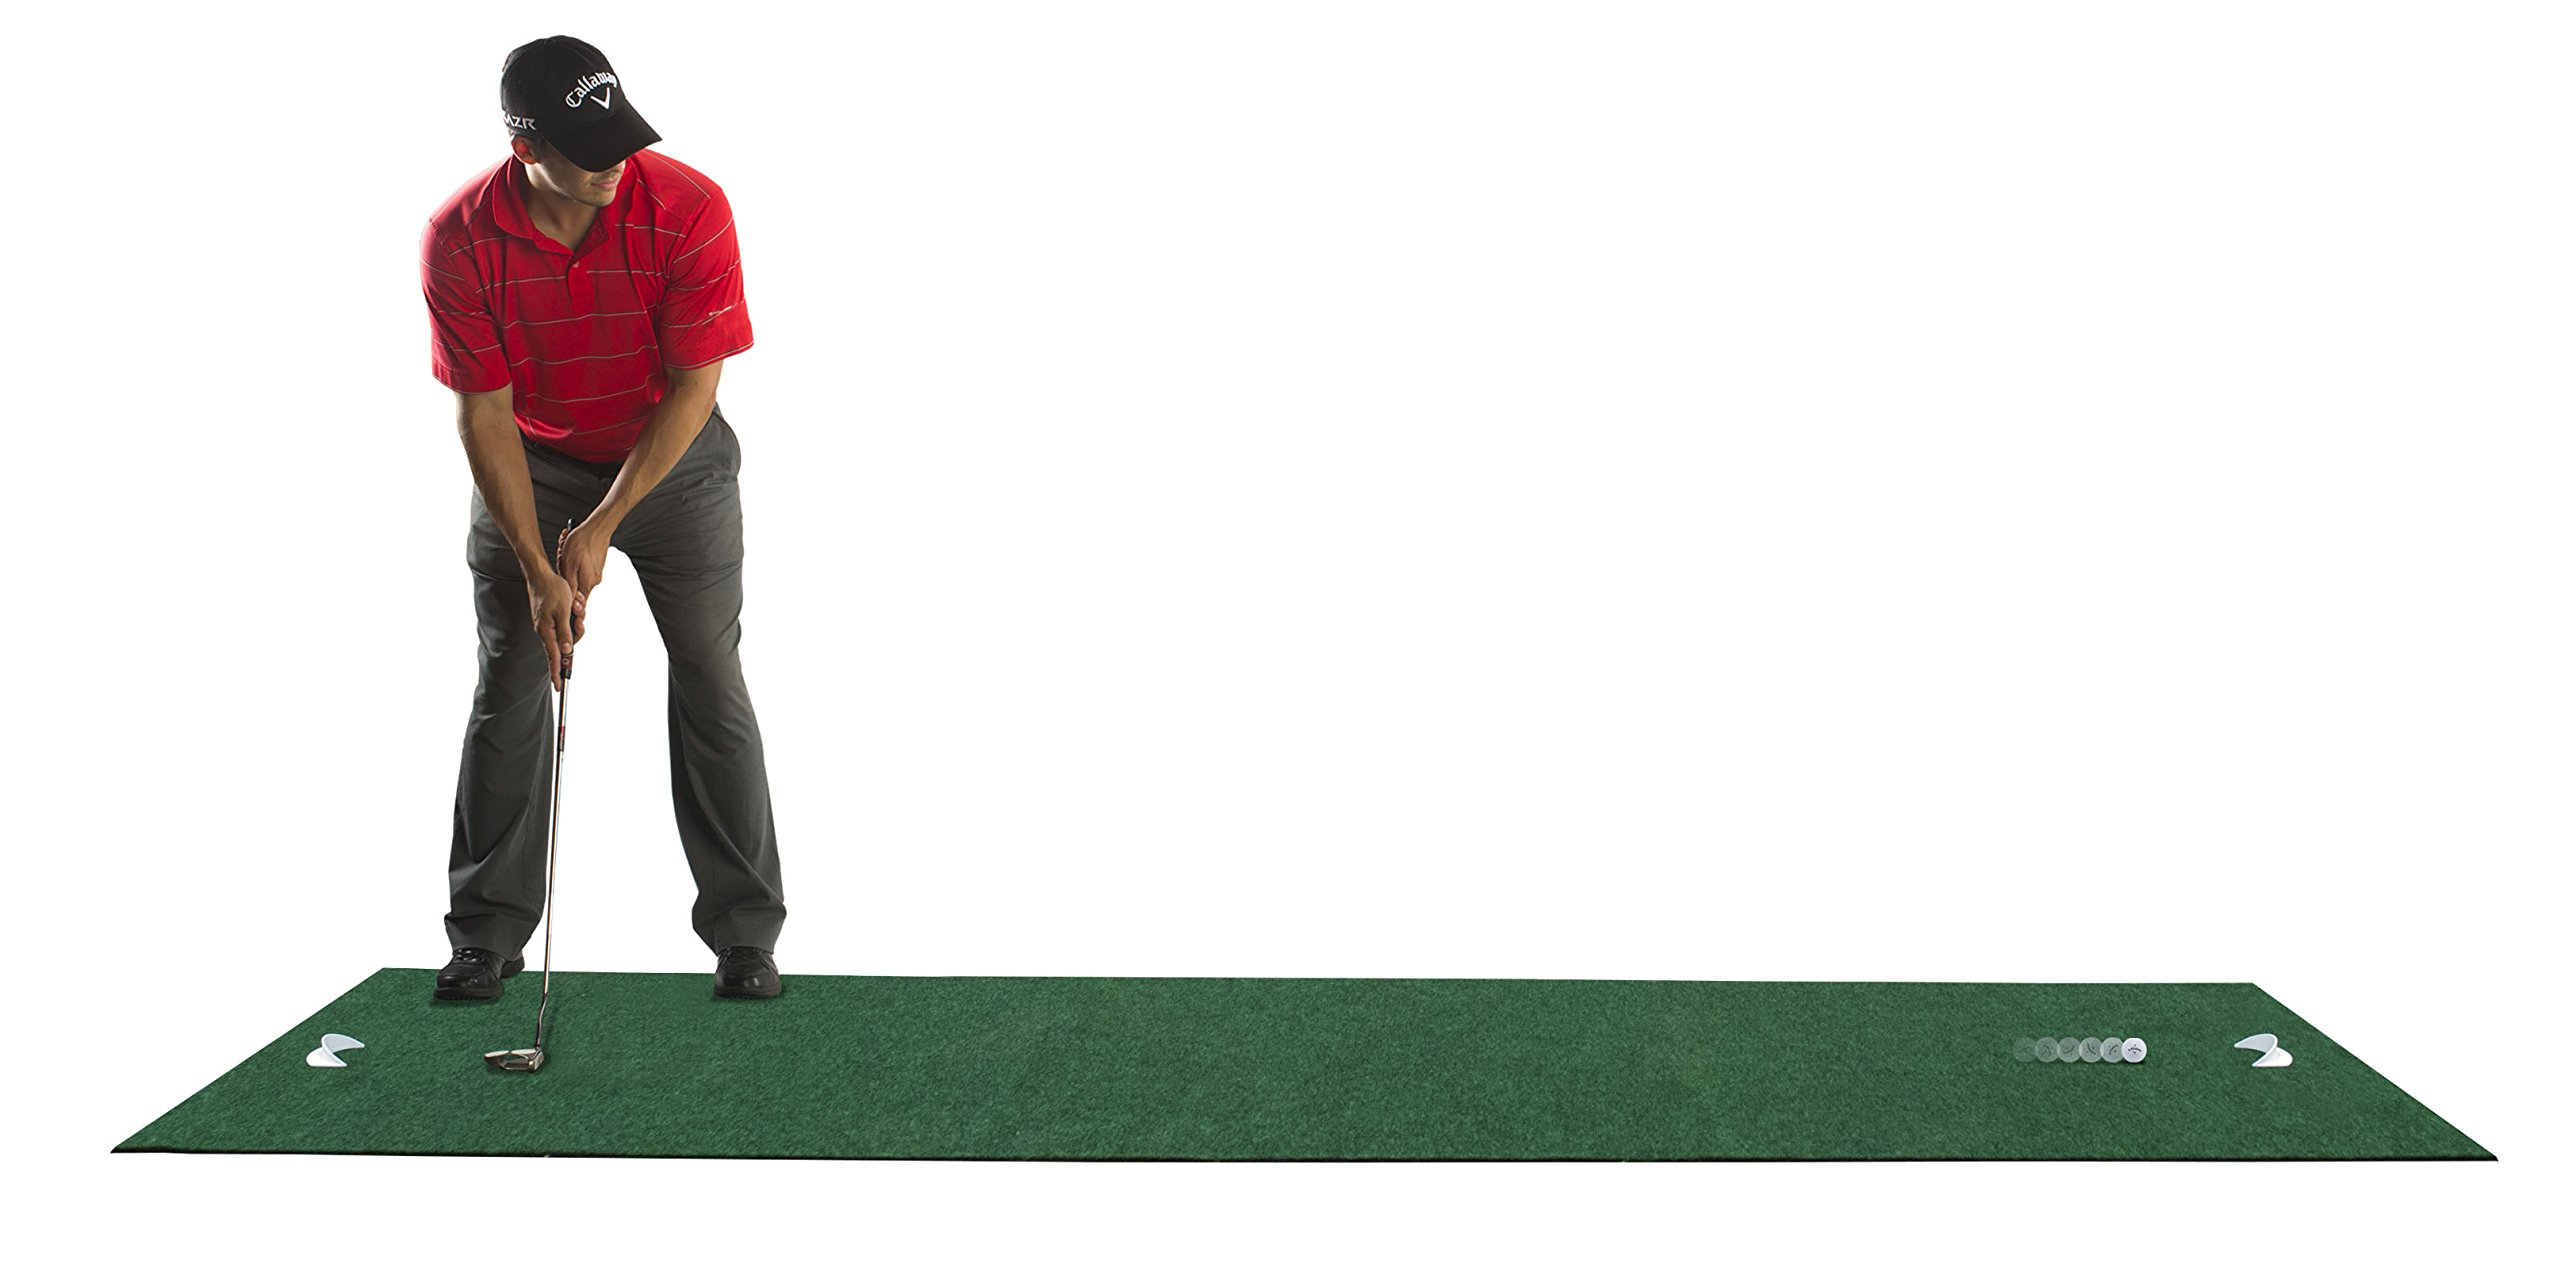 ODYSSEY Deluxe Golf Putting Mat, 11' by ODYSSEY